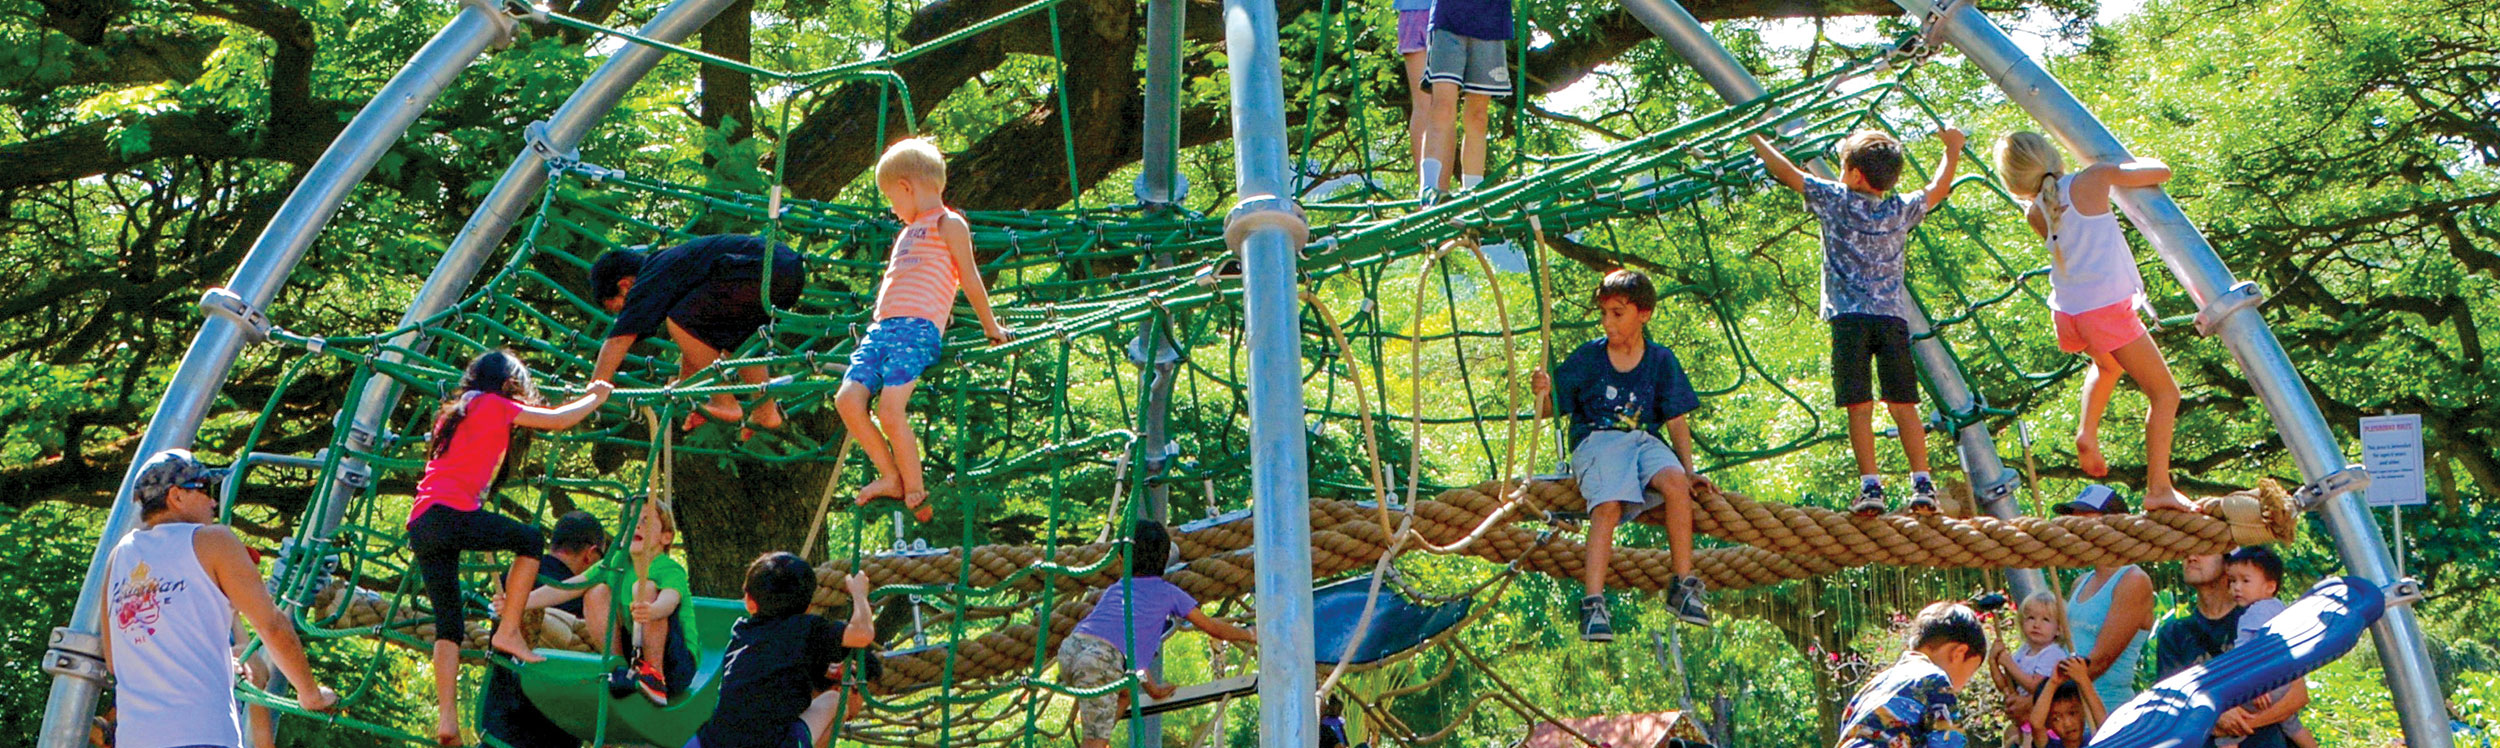 Swings and climbing for all ages at the Honolulu Zoo